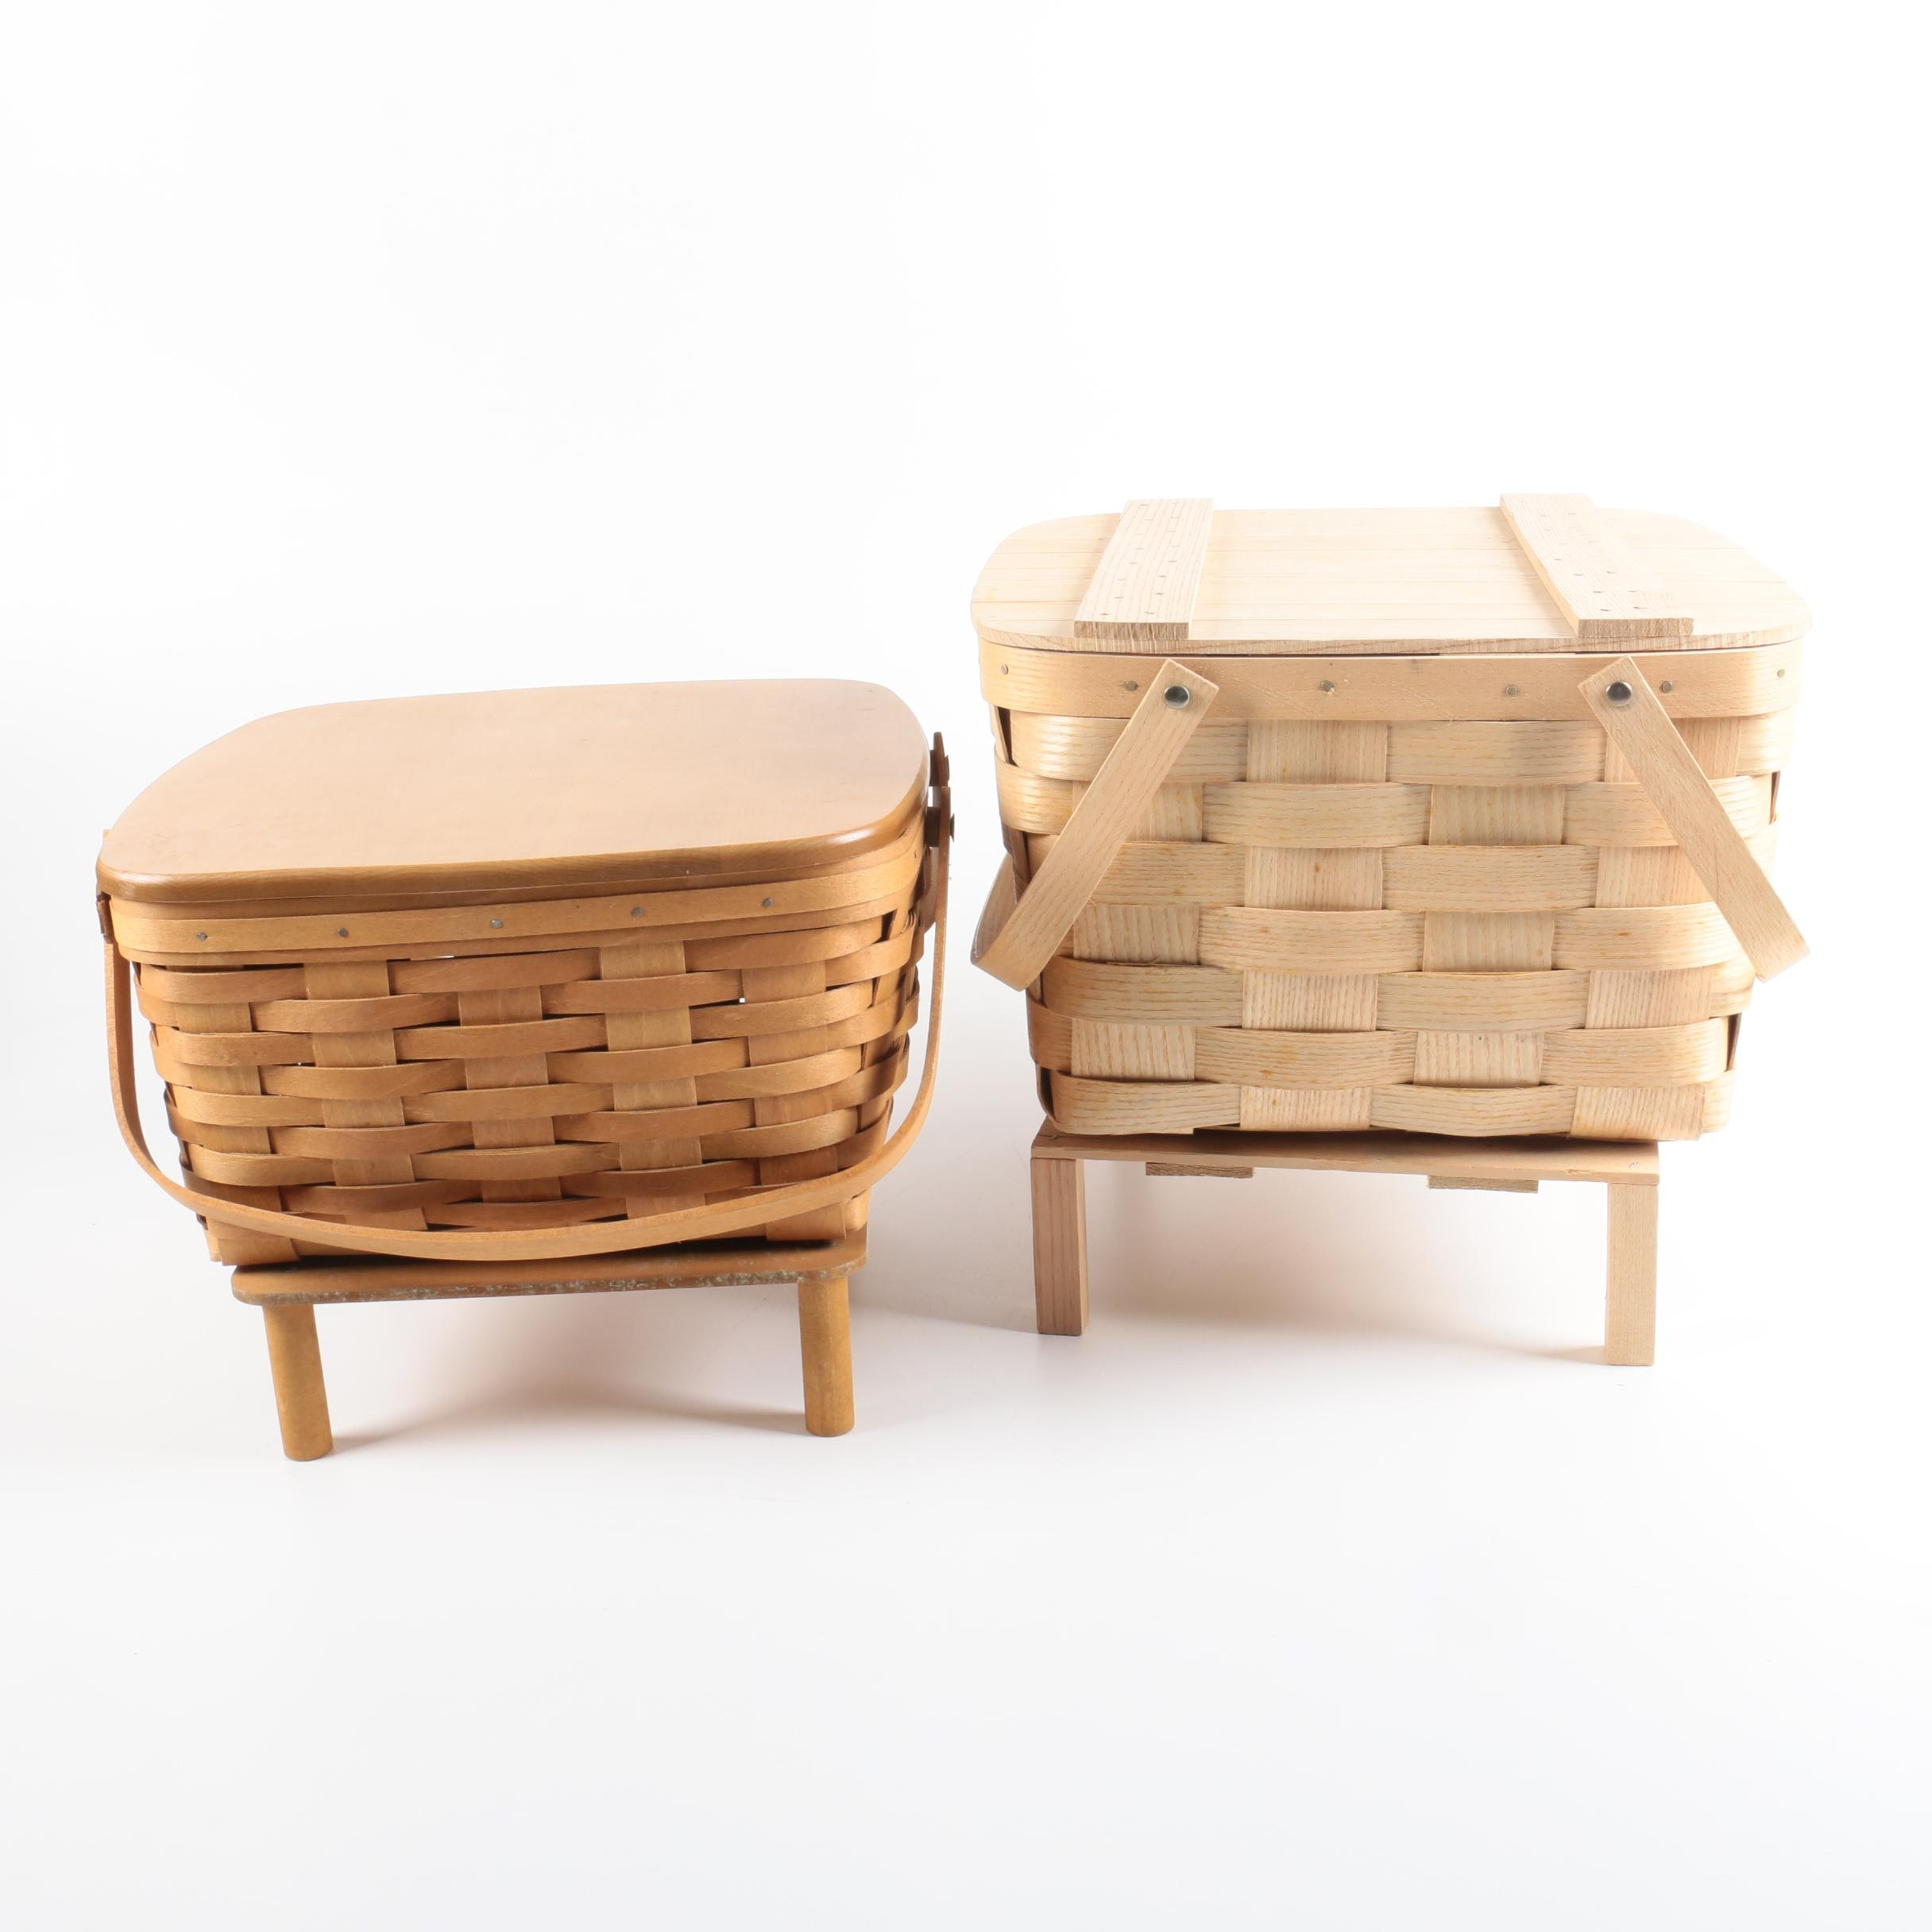 Pair of Double Handled Picnic Baskets with Platforms Featuring Longaberger